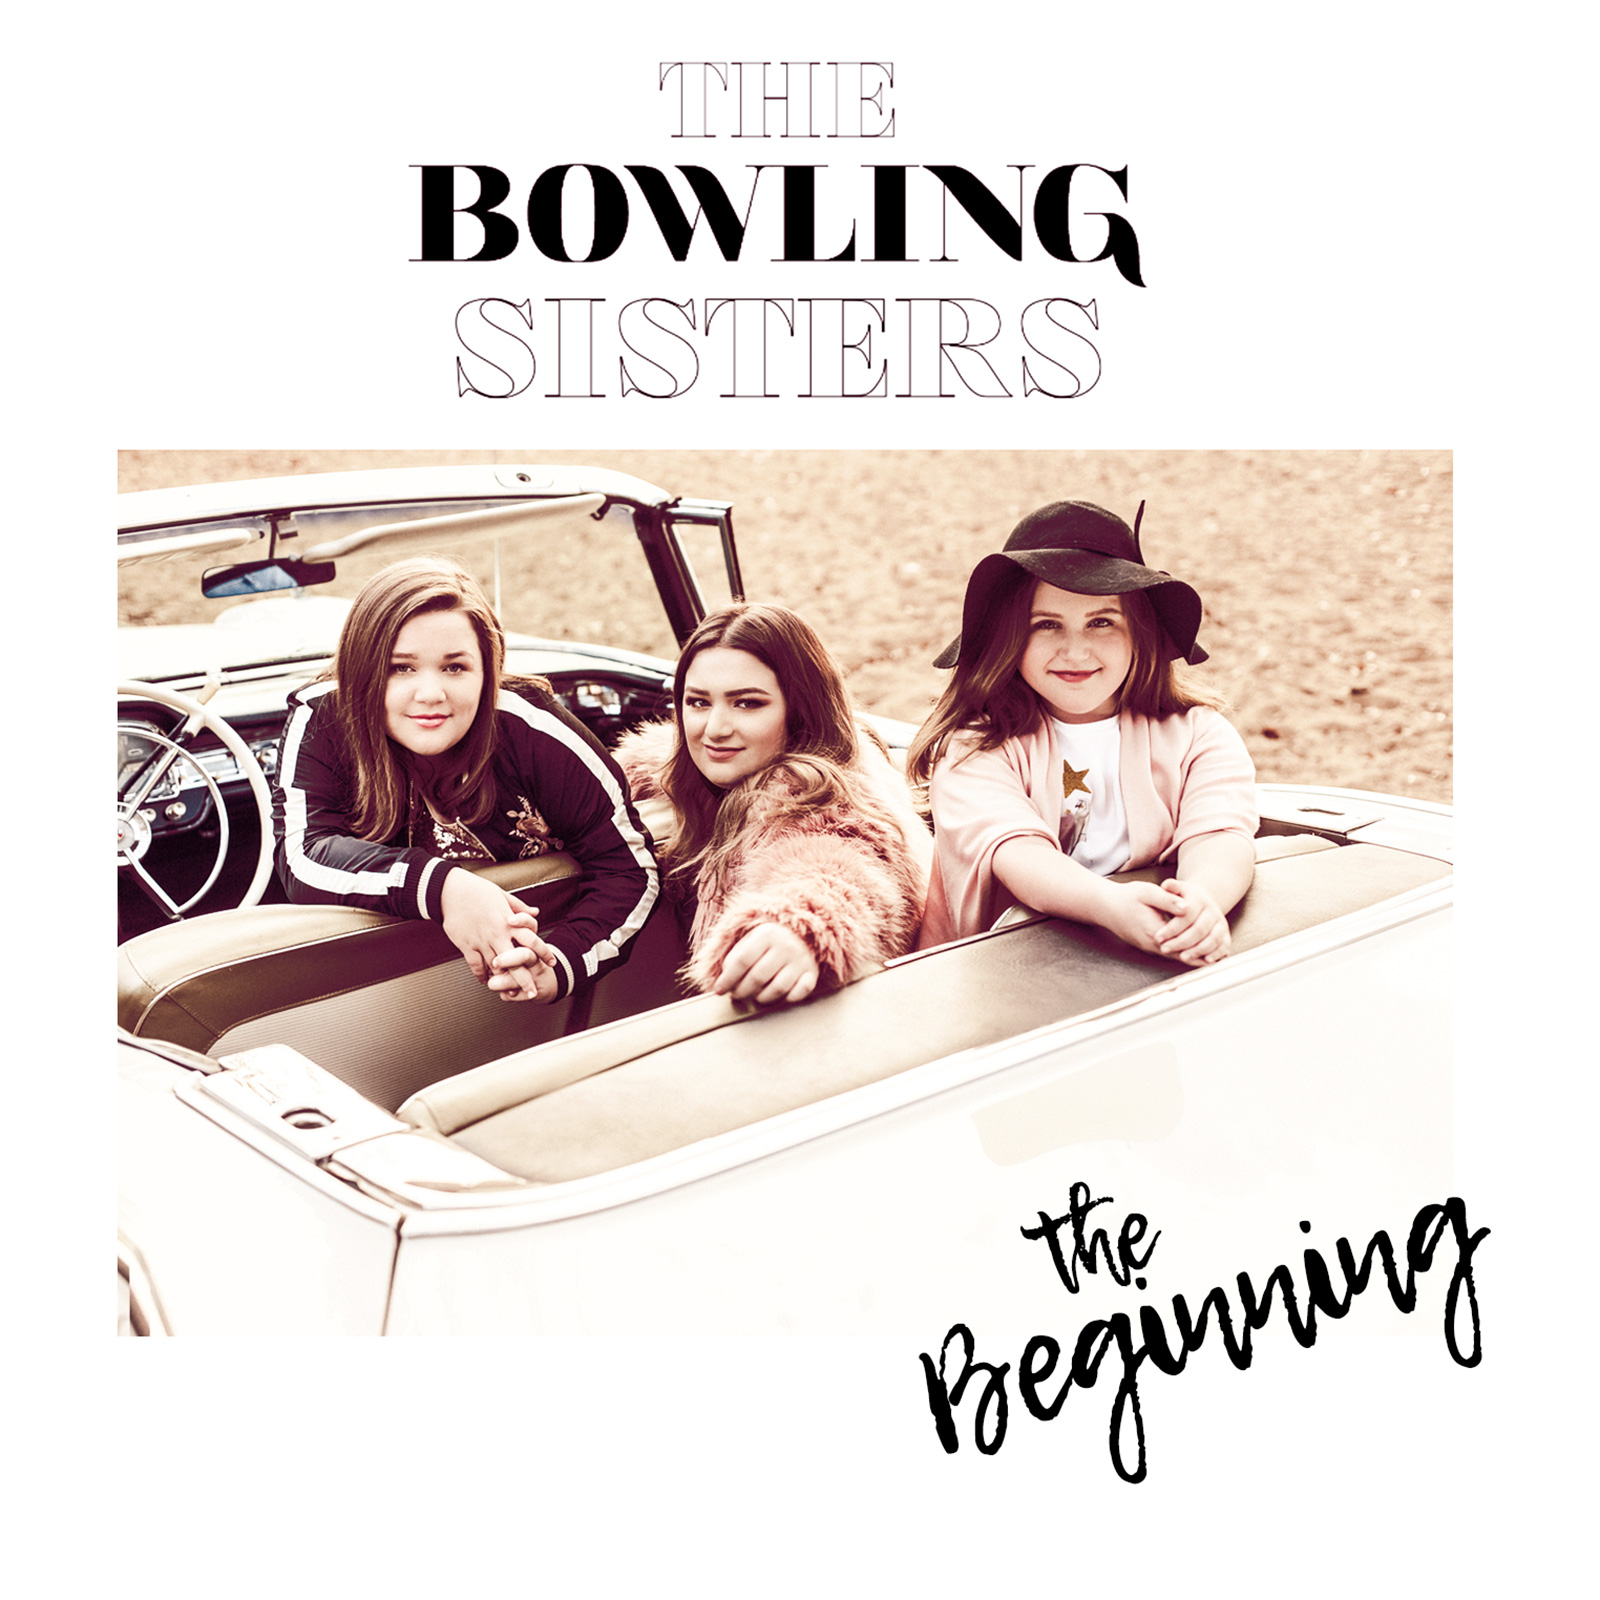 bowlingsisters-thebeginning